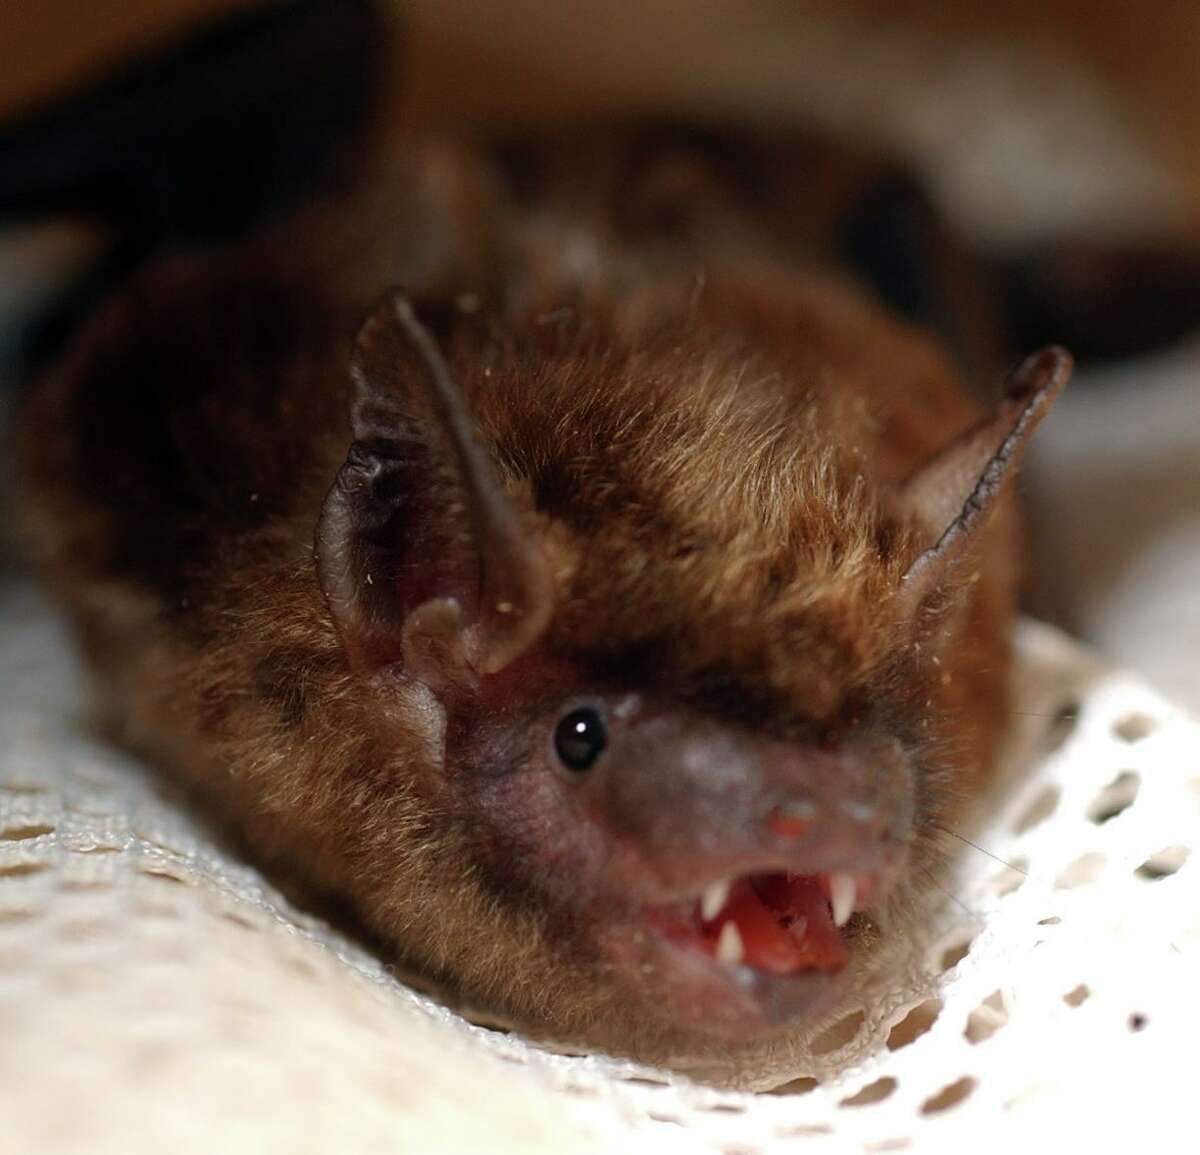 A Big Brown Bat, one of the most common bats in Connecticut.